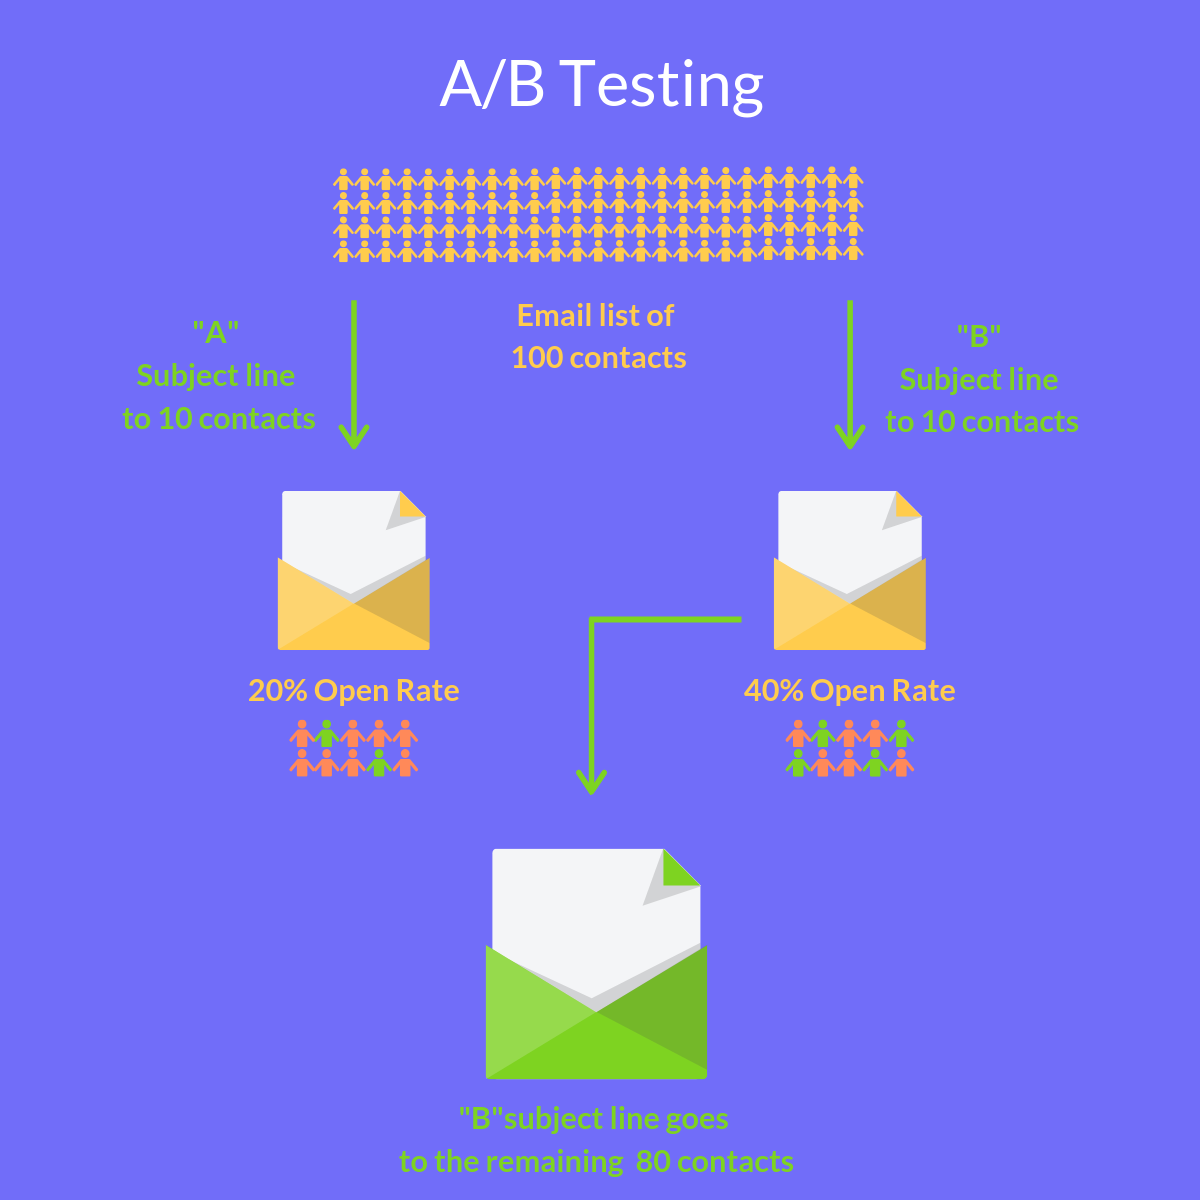 A/B Testing descreption graph